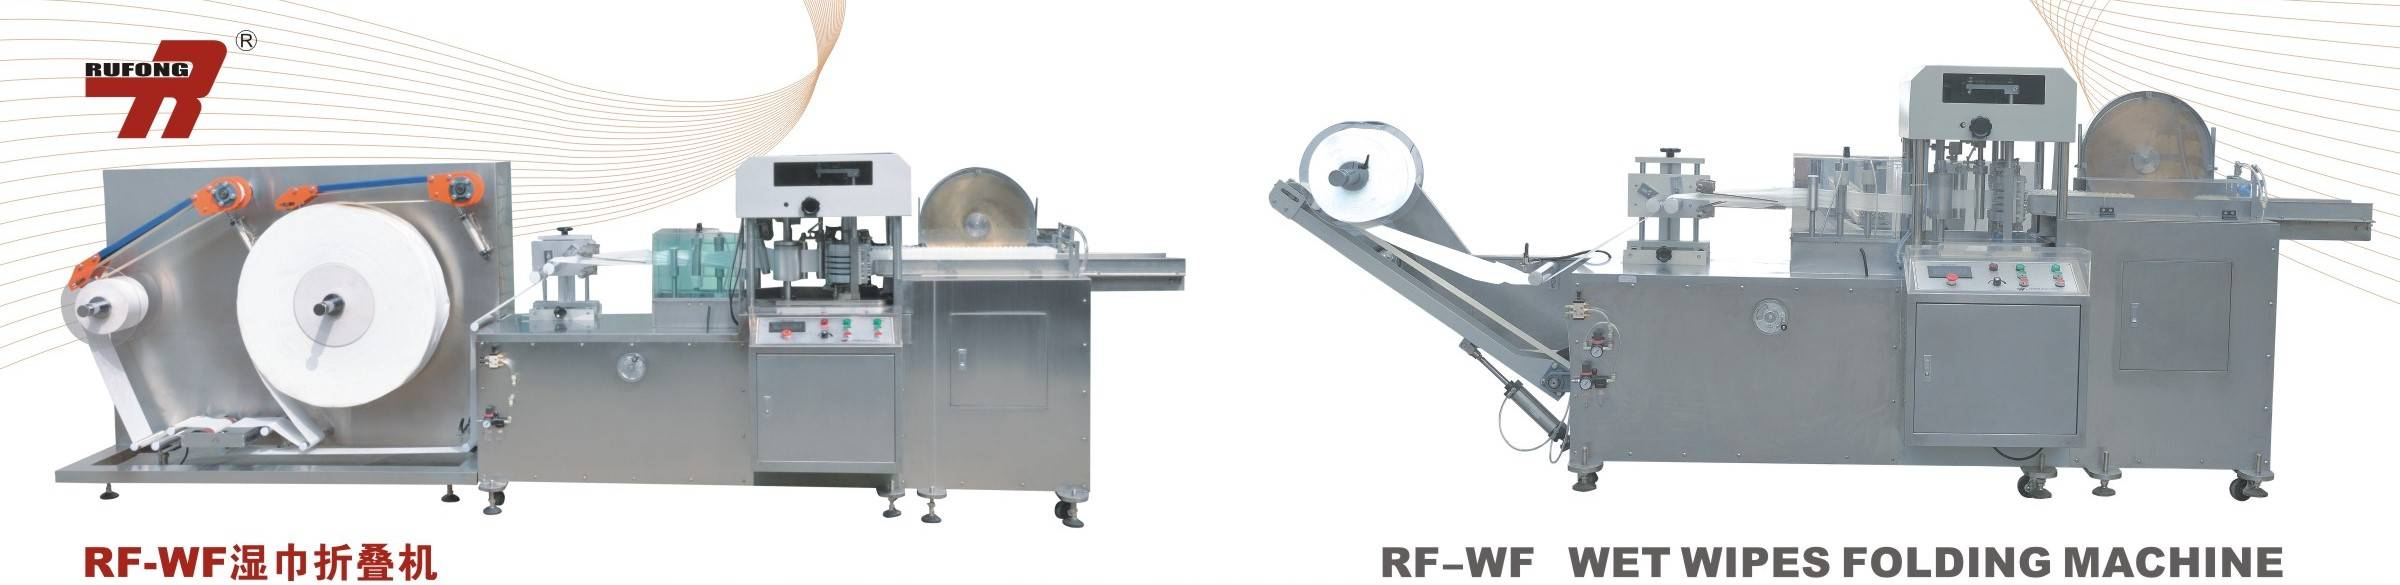 RF-WF Wet Wipes Folding Machine